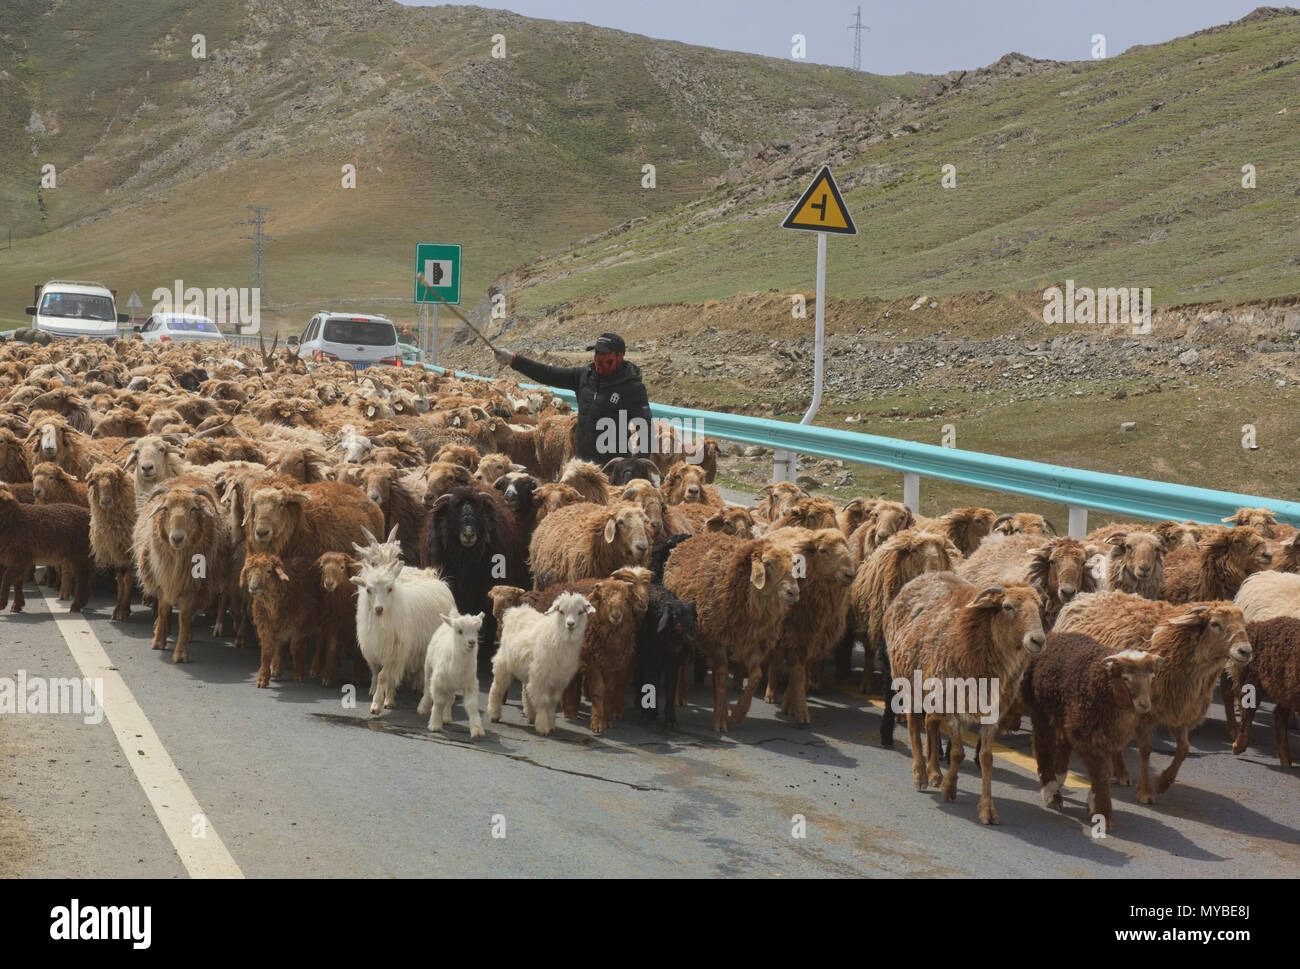 Kazakh nomads rounding up their sheep, Keketuohai, Xinjiang, China - Stock Image